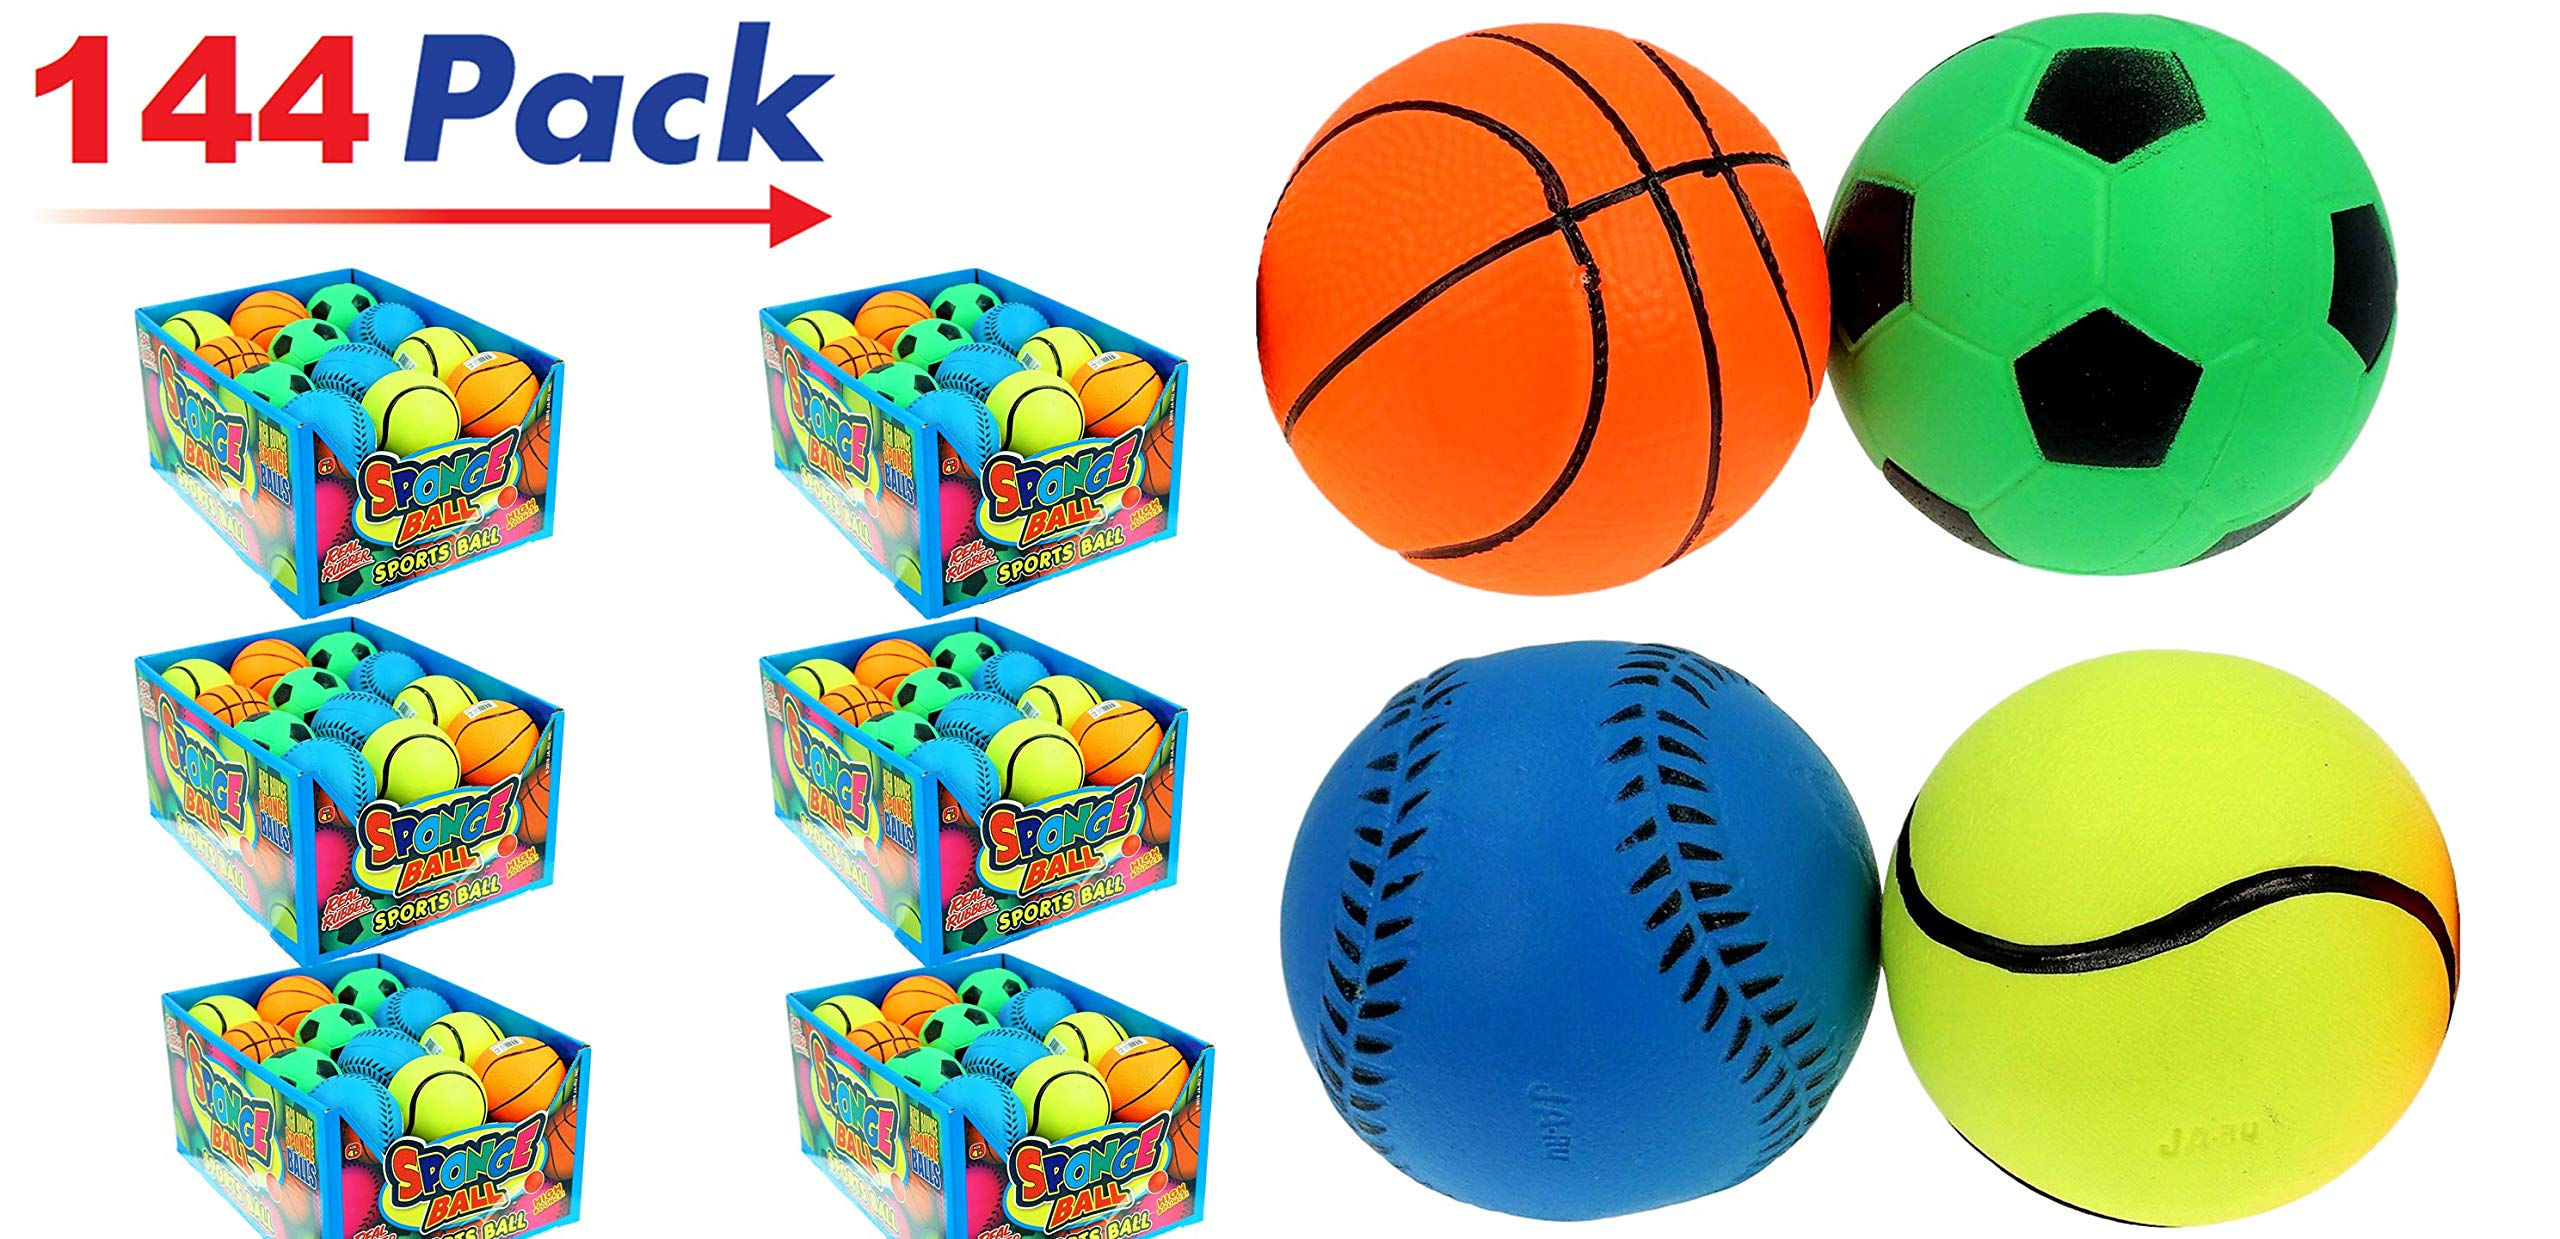 Rubber Bouncy Ball Sports Style (Pack of 144) 2.5'' Hi Bounce Same Like Pinky Balls for Play or Massage Therapy. Plus 1 Small JA-RU Ball. # 986-144p by JaRu